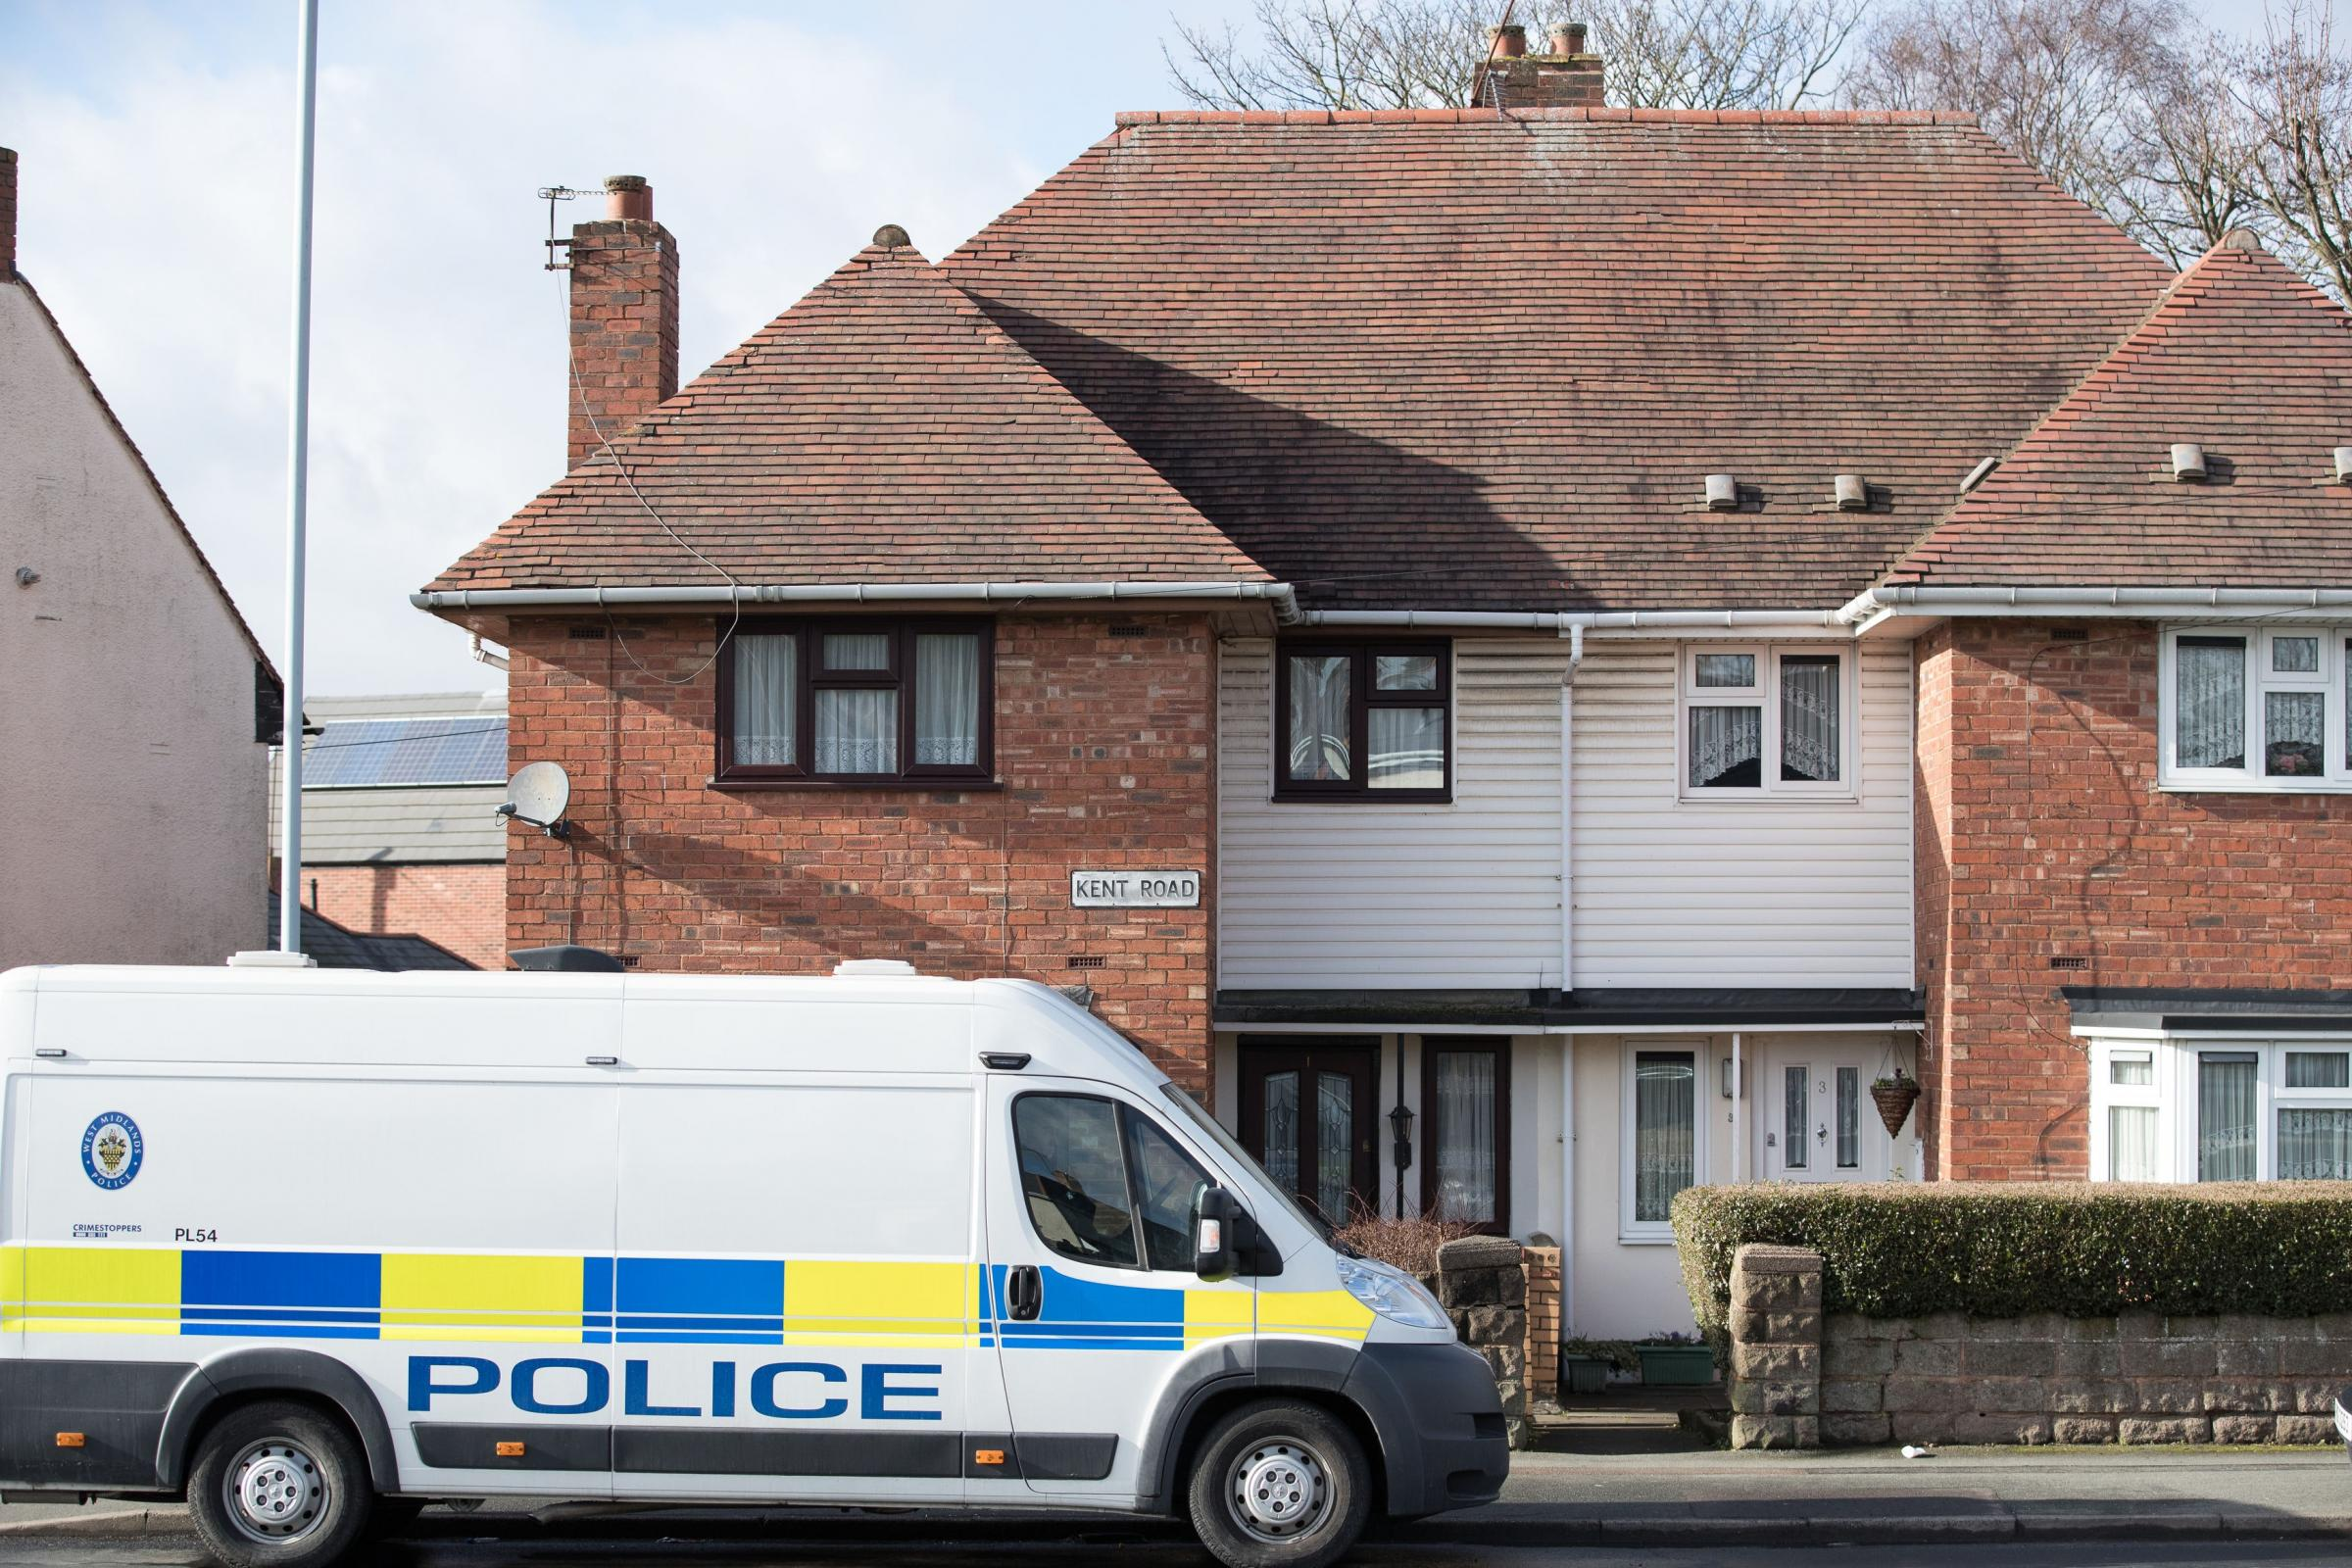 Police presence outside the property on Kent Road in Wolverhampton (Aaron Chown/PA)